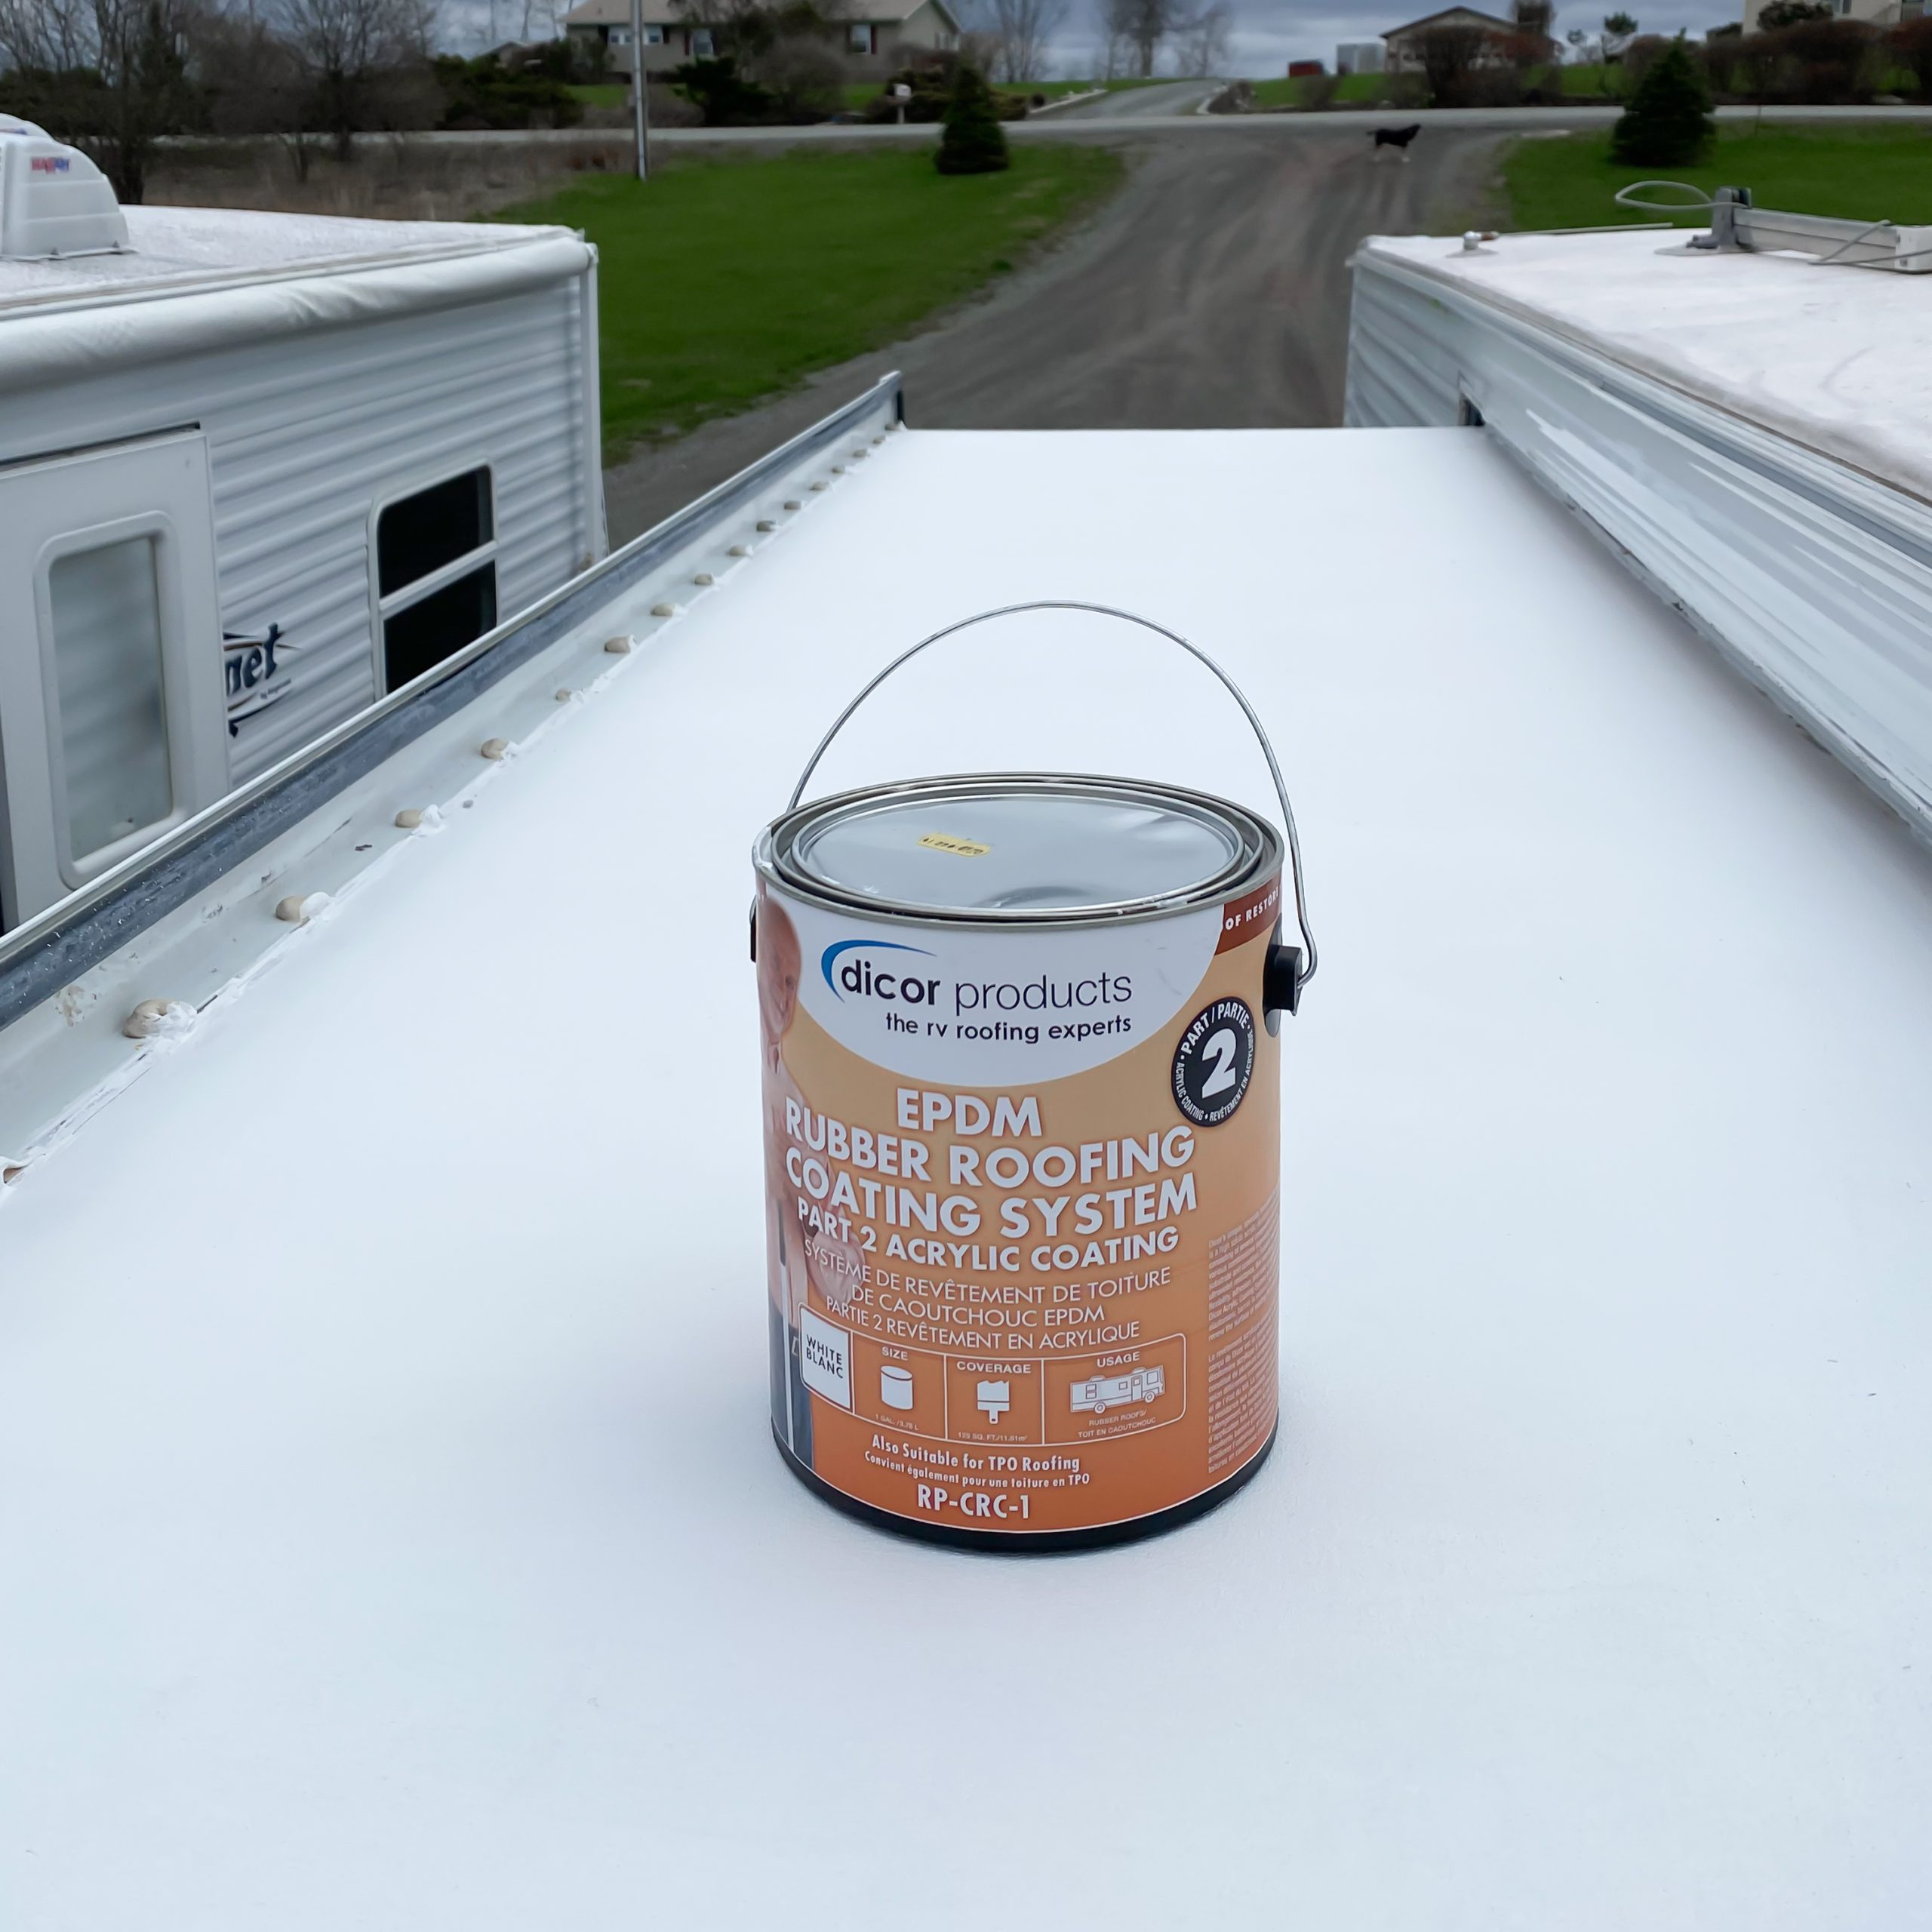 Can of RV rubber roof coating product on an RV slide out.